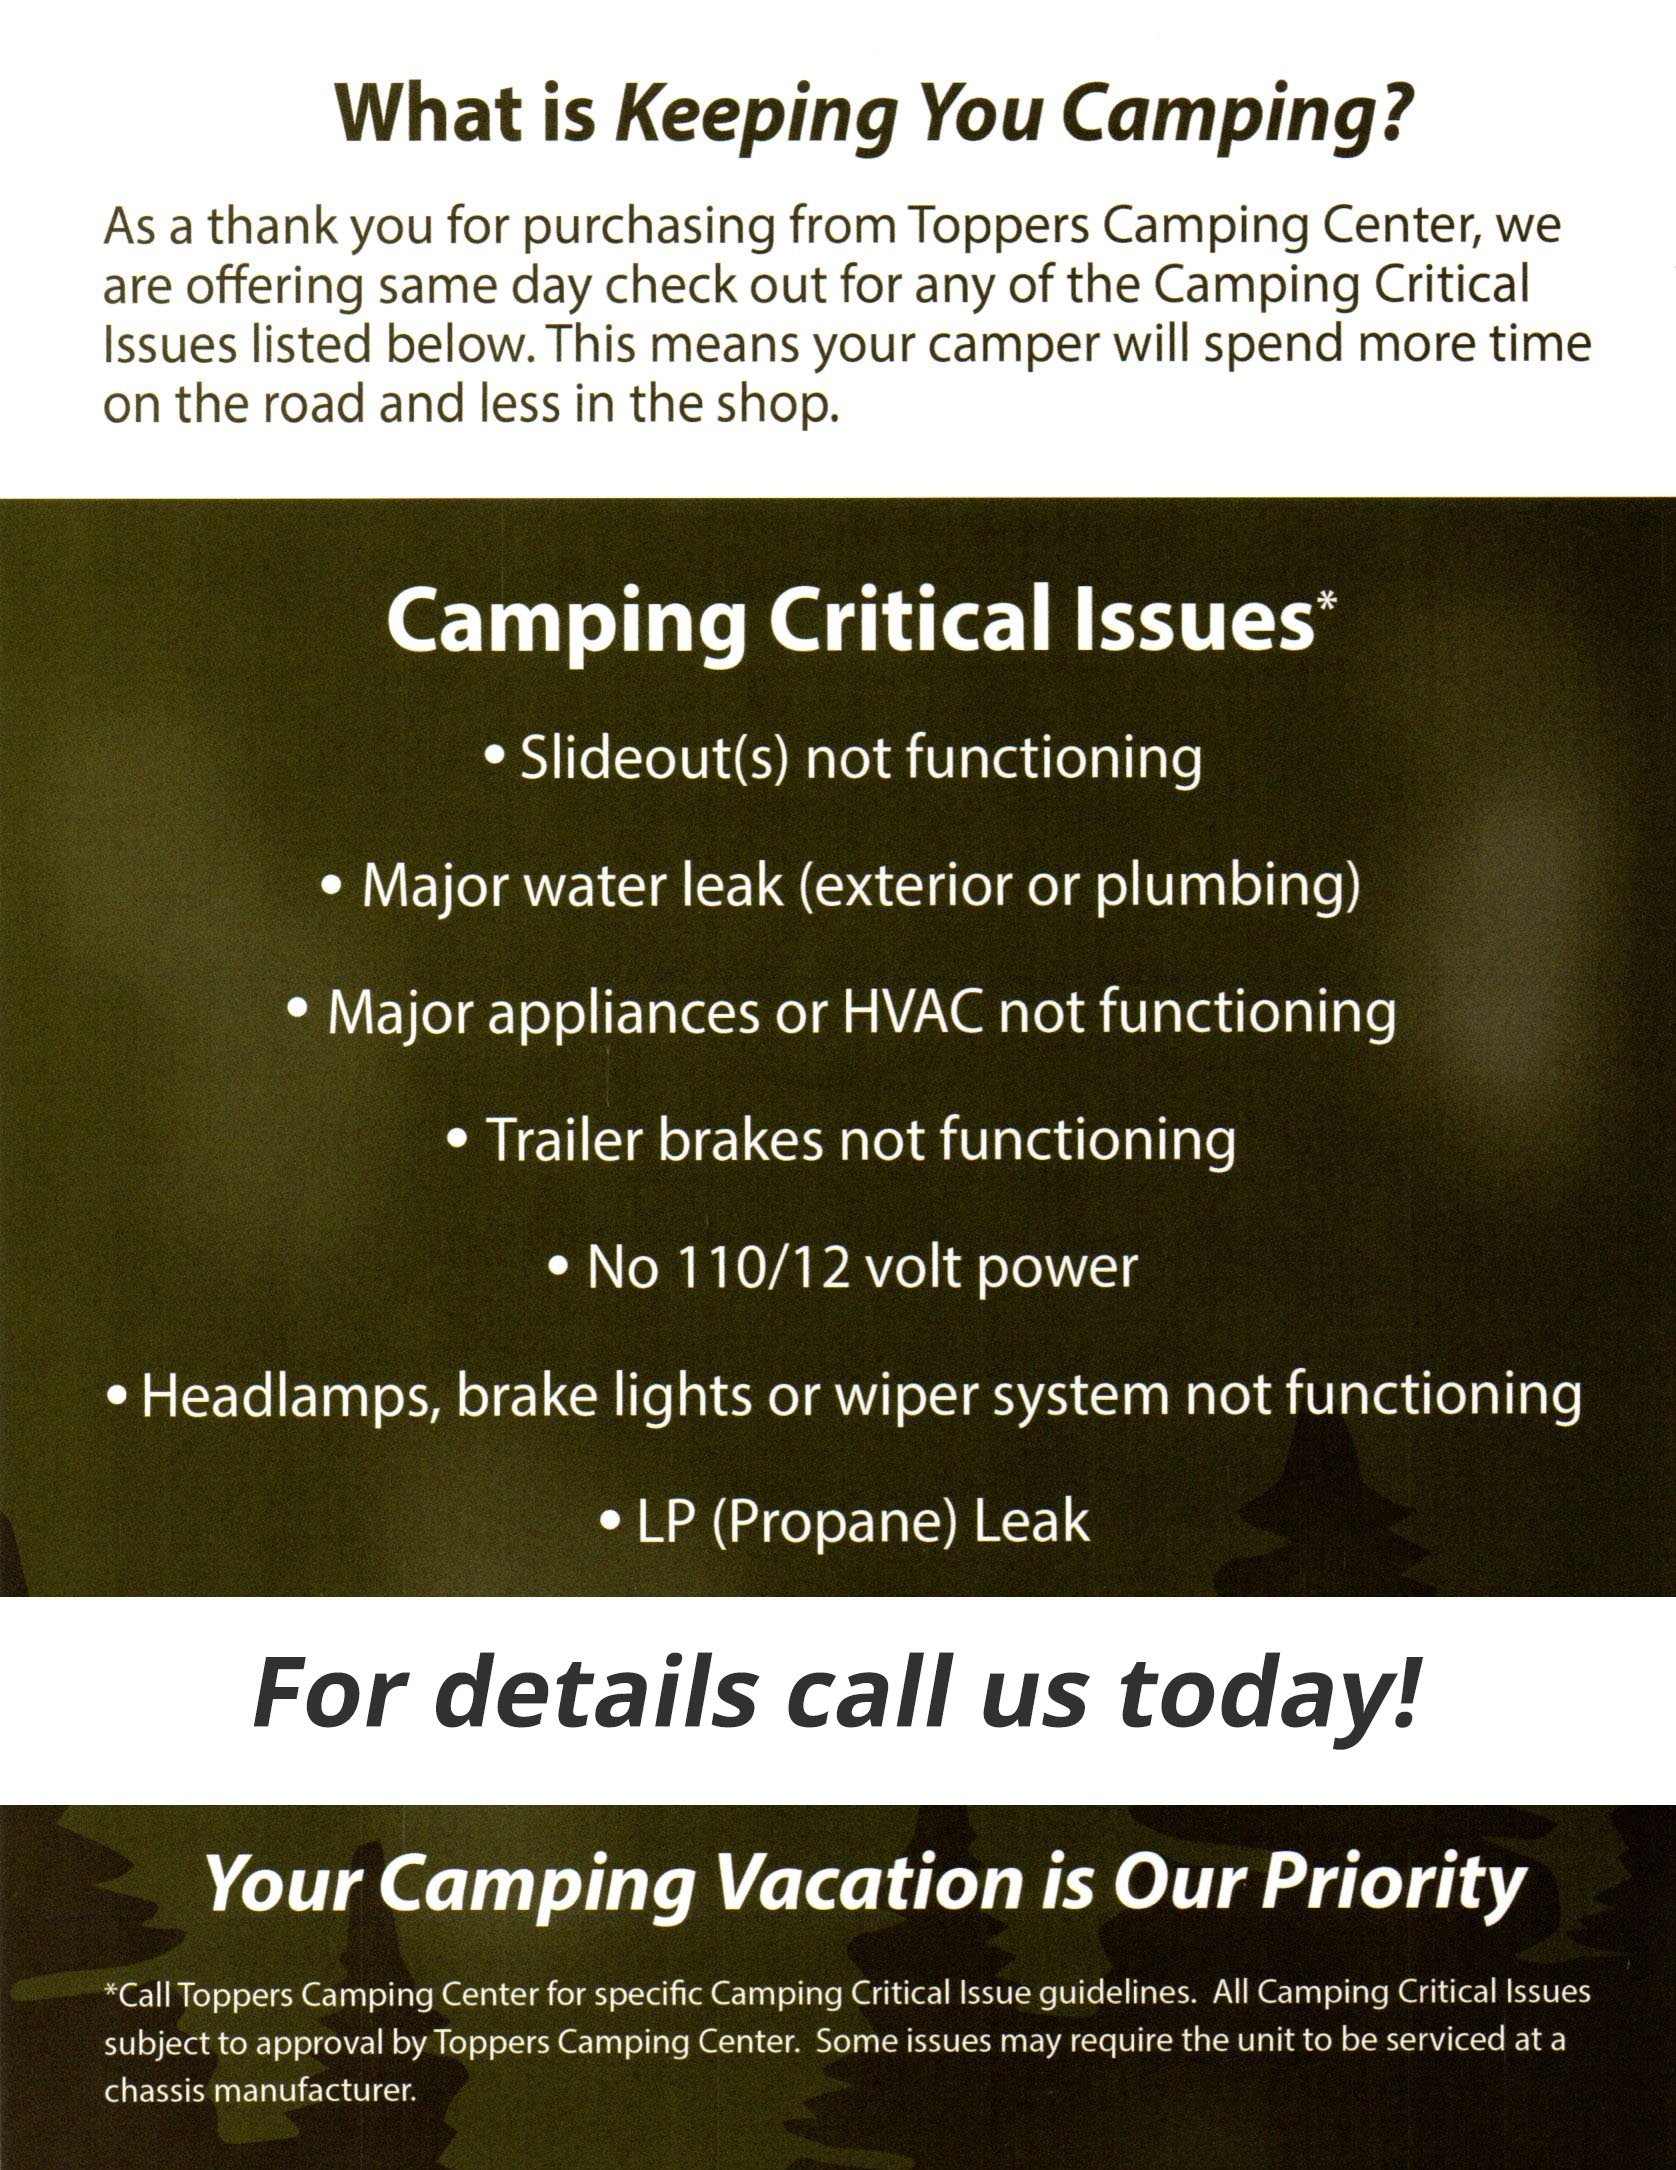 We Keep You Camping